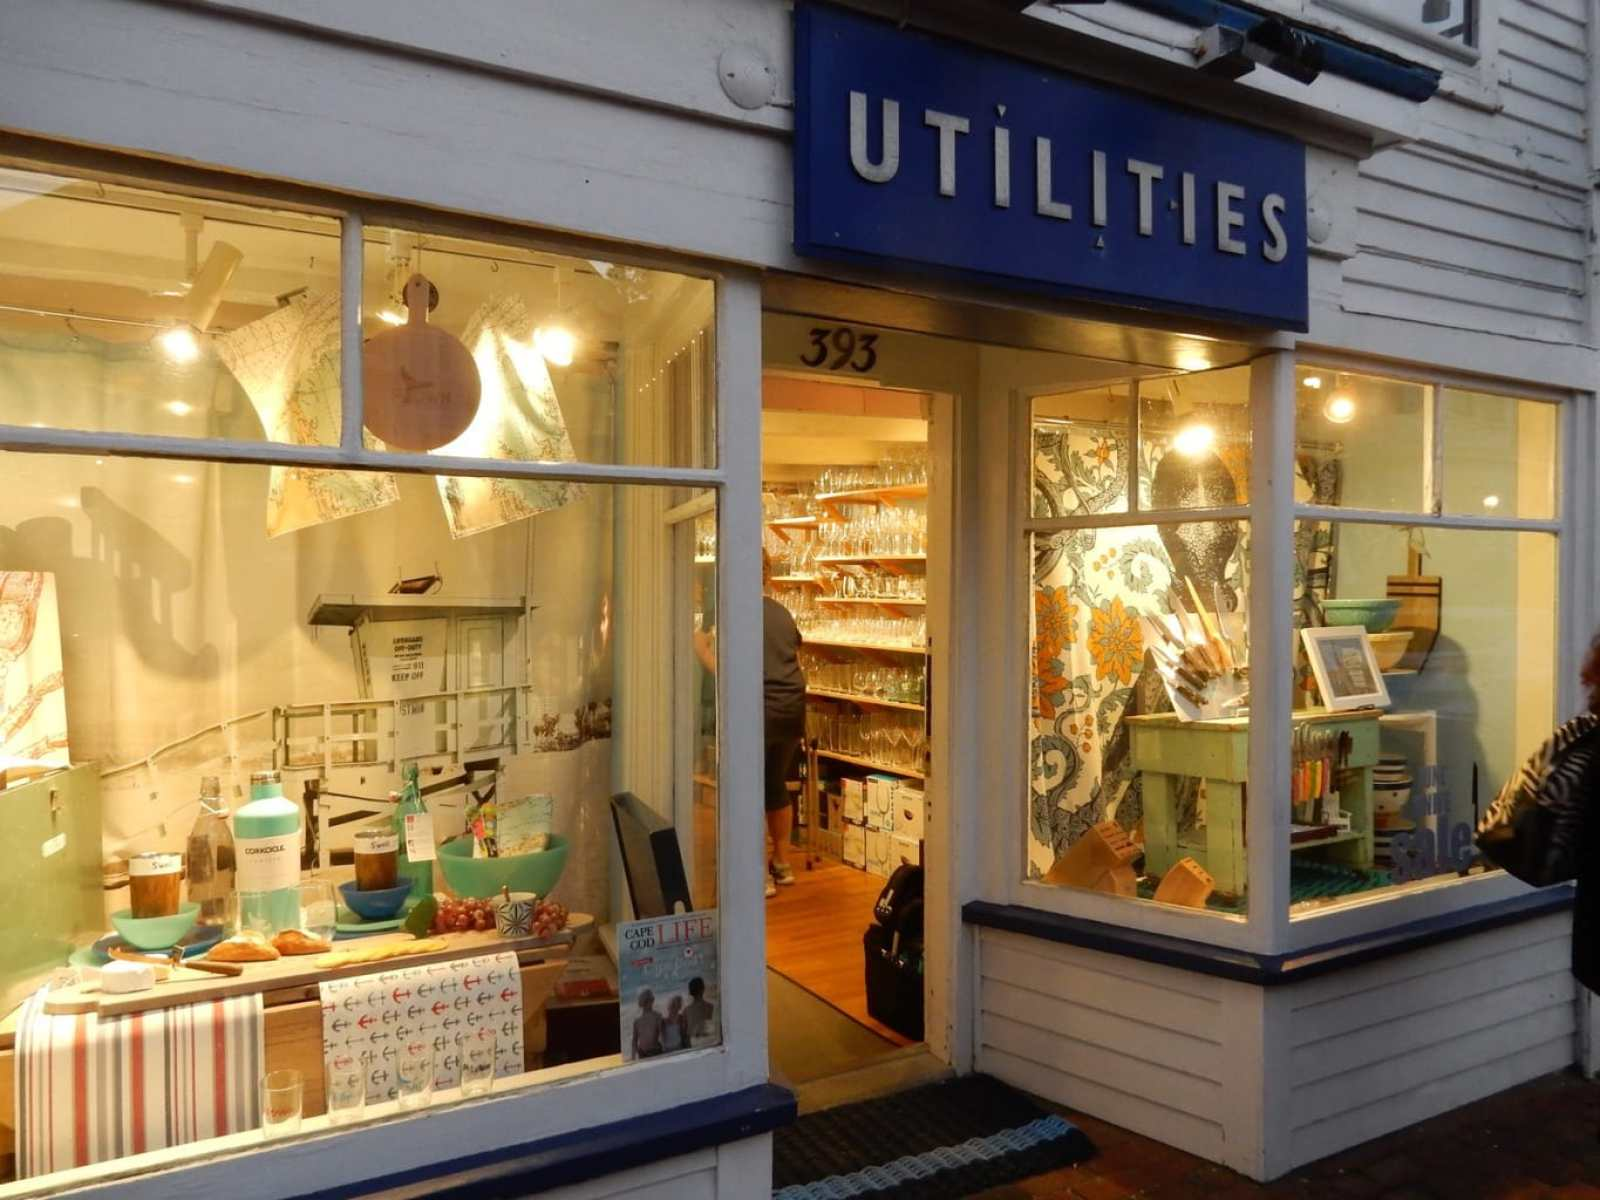 Utilities, Provincetown MA